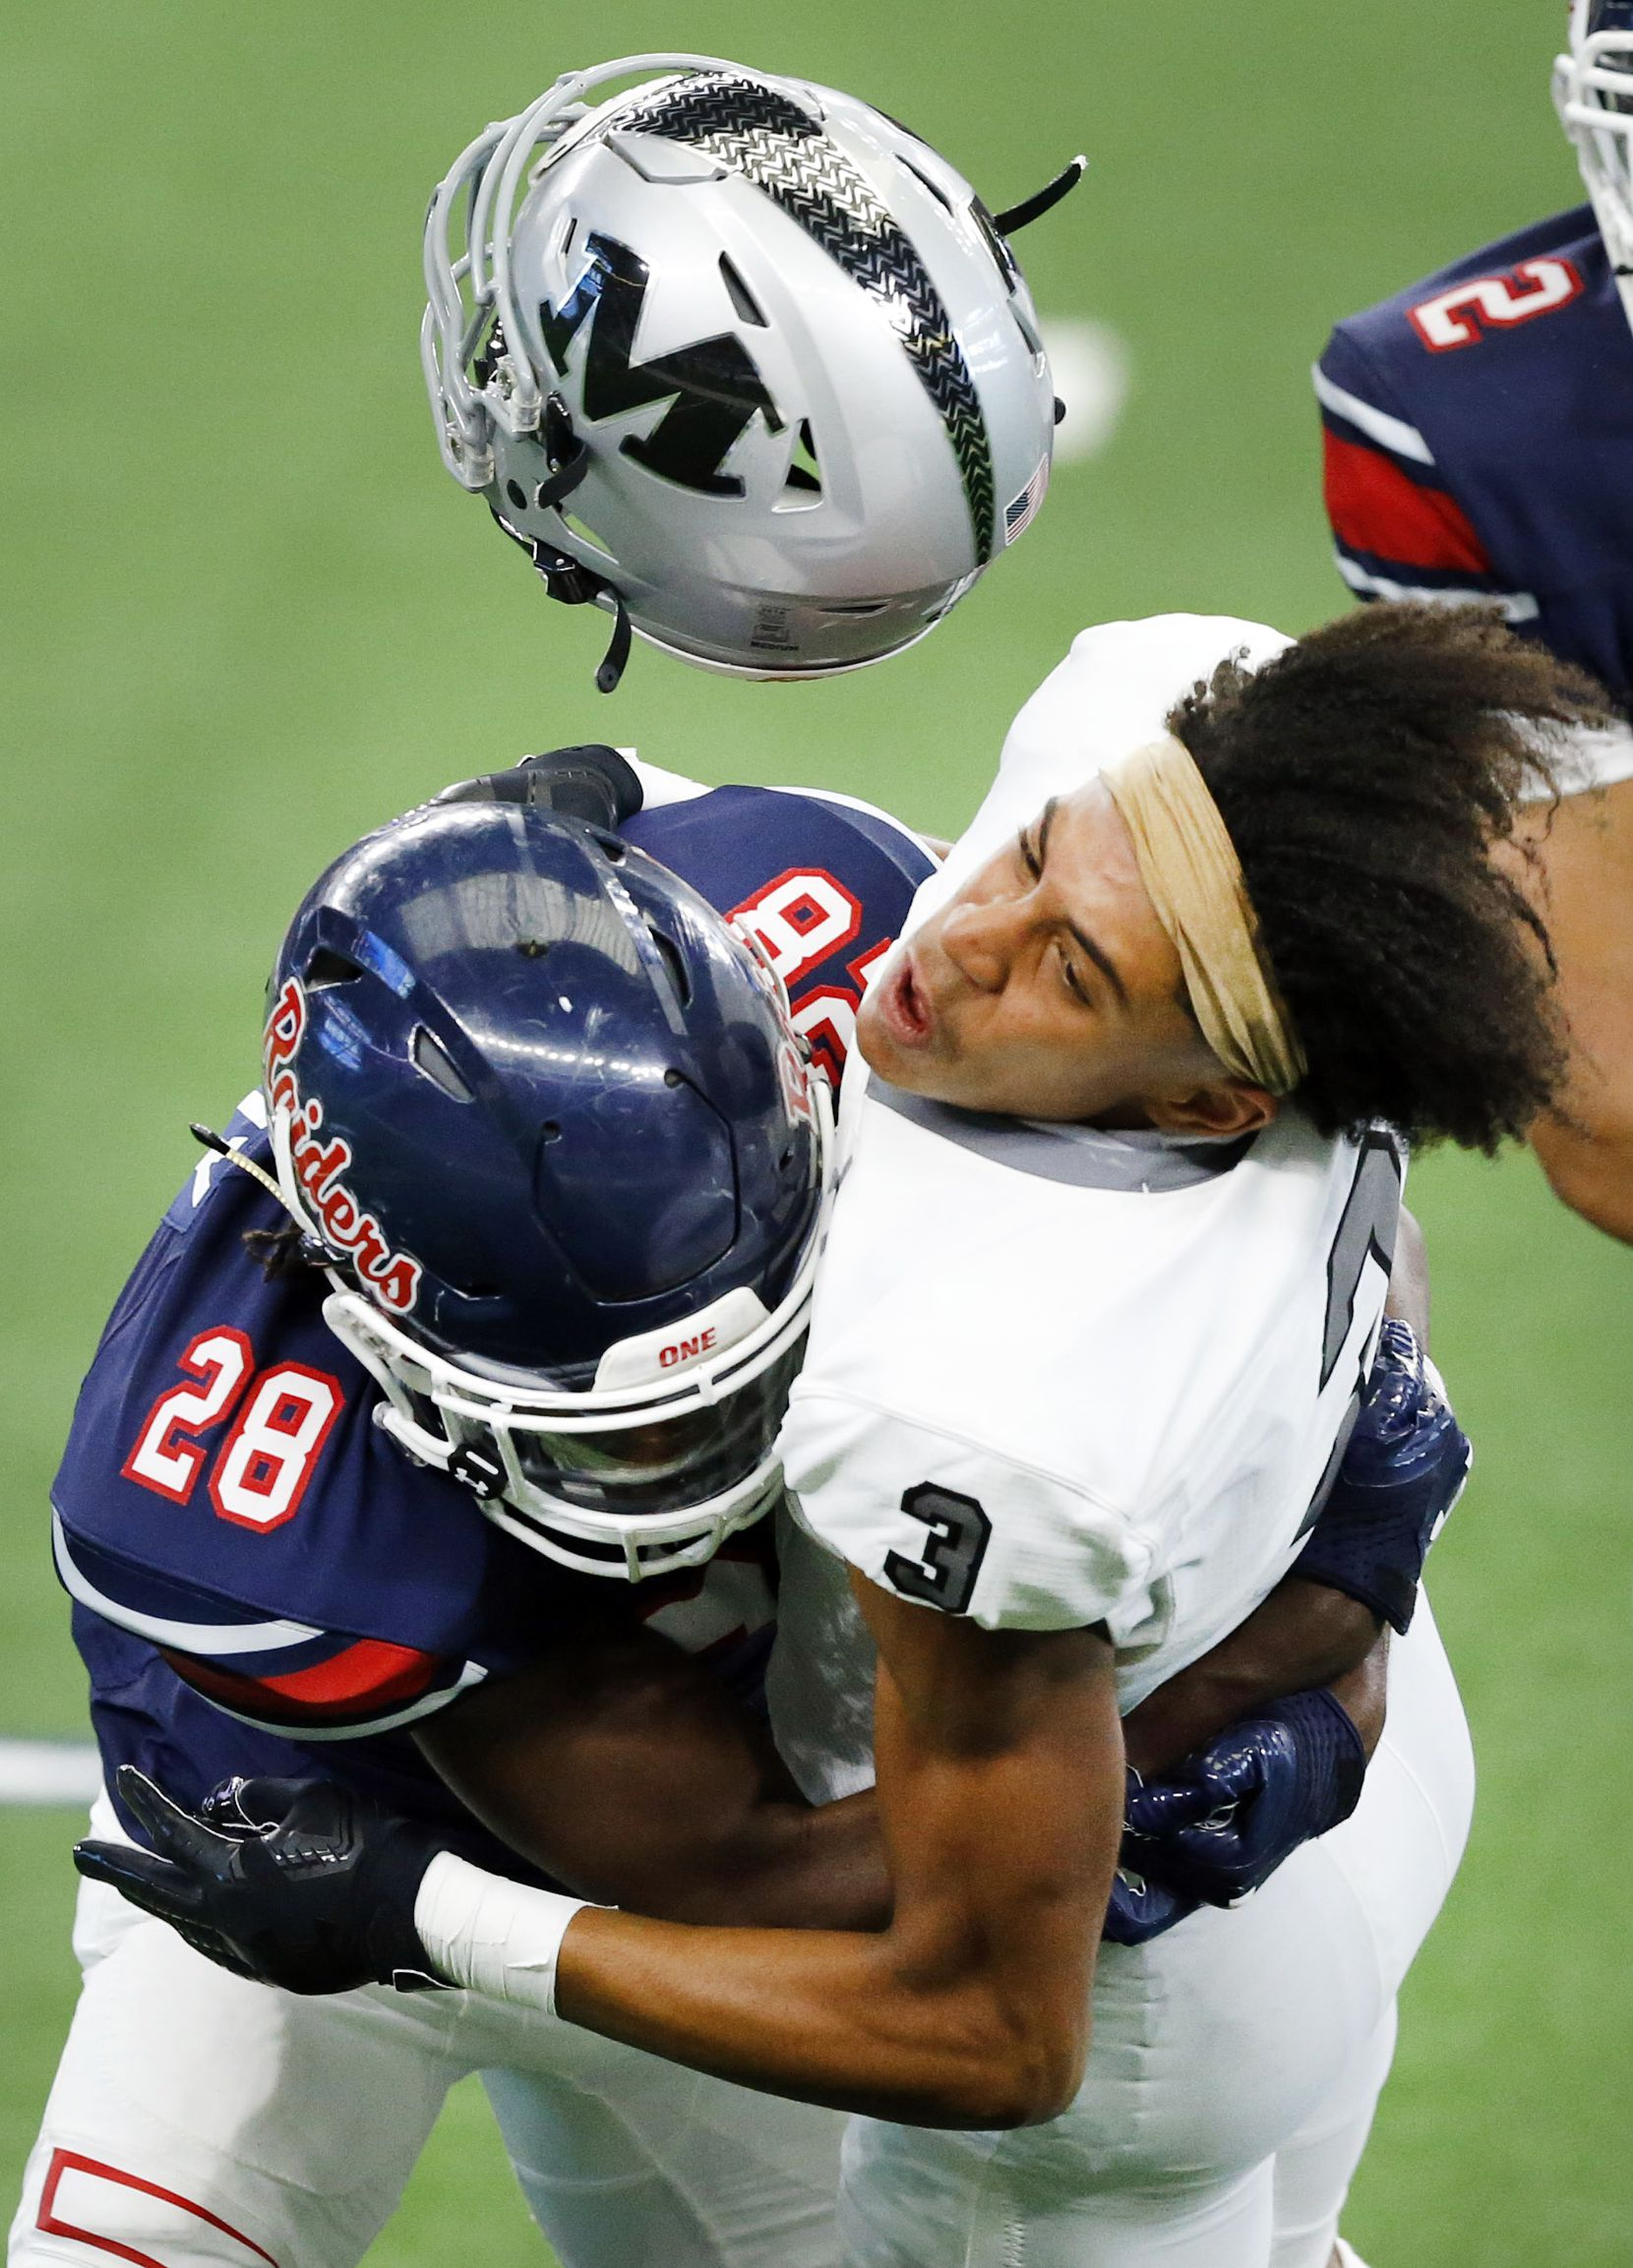 Denton Ryan defensive back Kaden Kelly (28) puts a hit on Arlington Martin receiver Cydd Ford (3), forcing his helmet to fly off on an overthrown pass in first half at AT&T Stadium in Arlington, Friday, September 25, 2020. No penalty was assessed on the play. (Tom Fox/The Dallas Morning News)